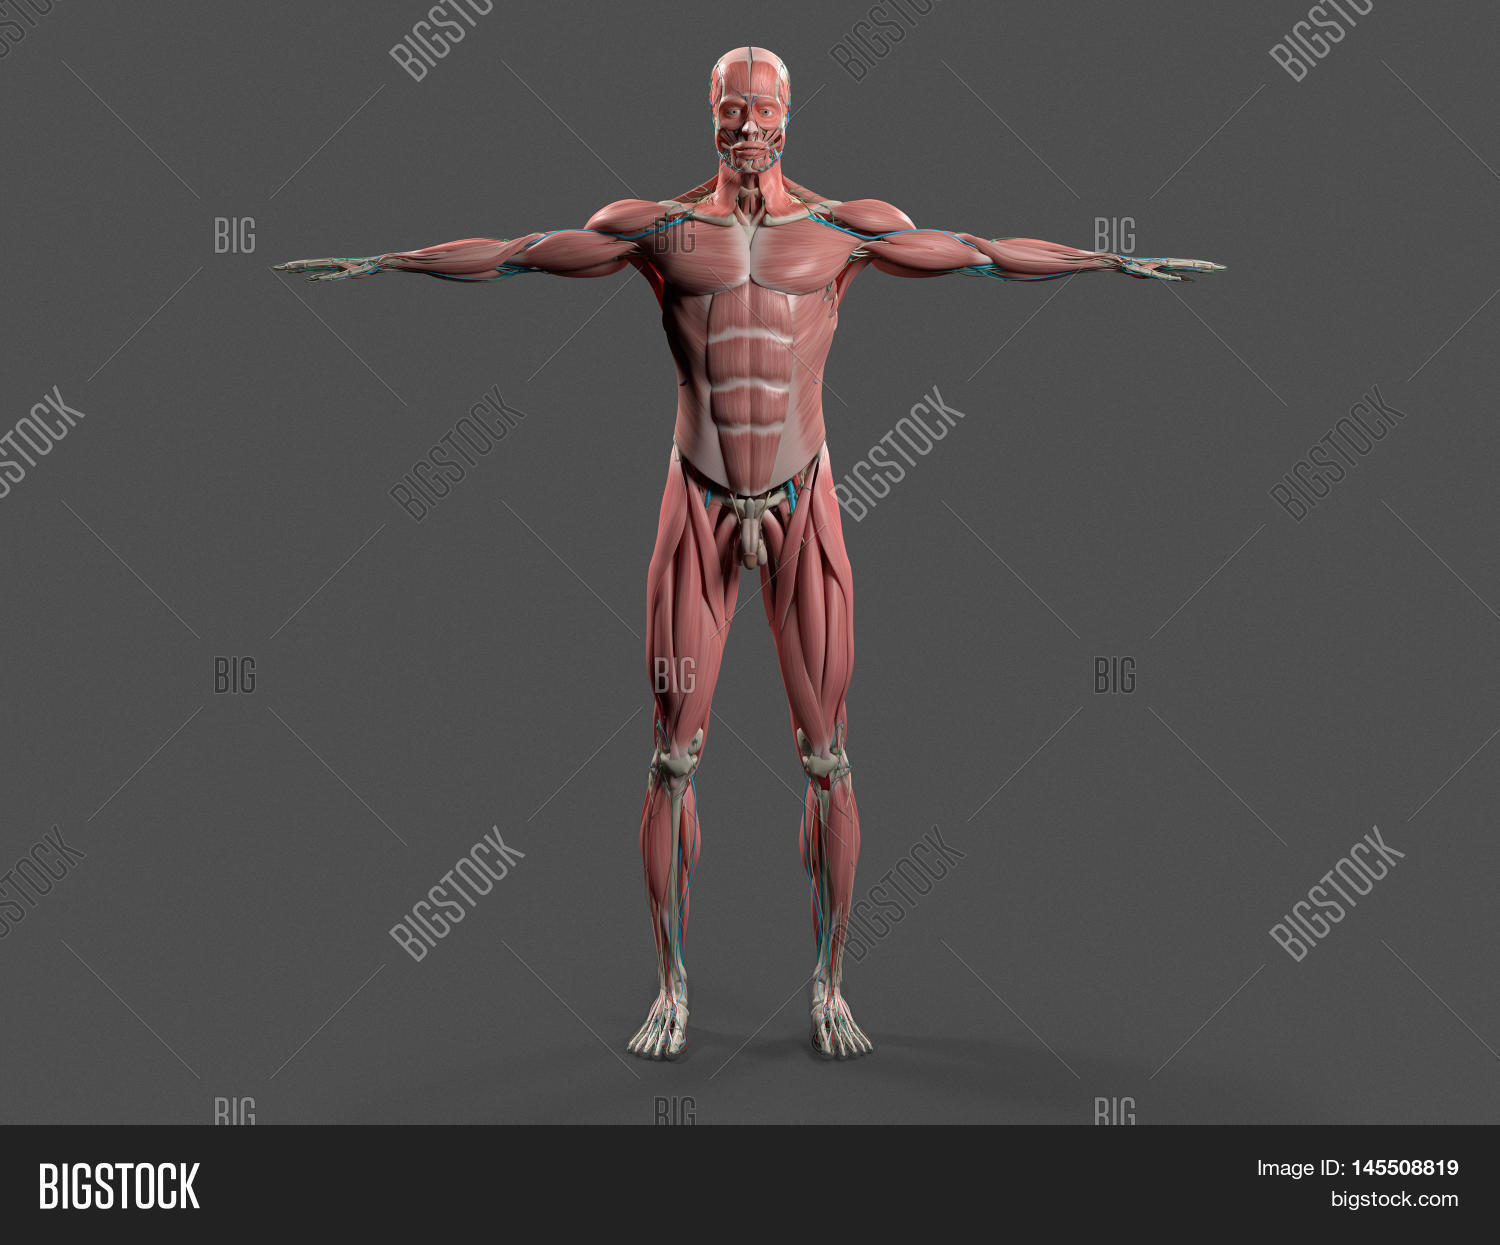 Human Anatomy Showing Image Photo Free Trial Bigstock